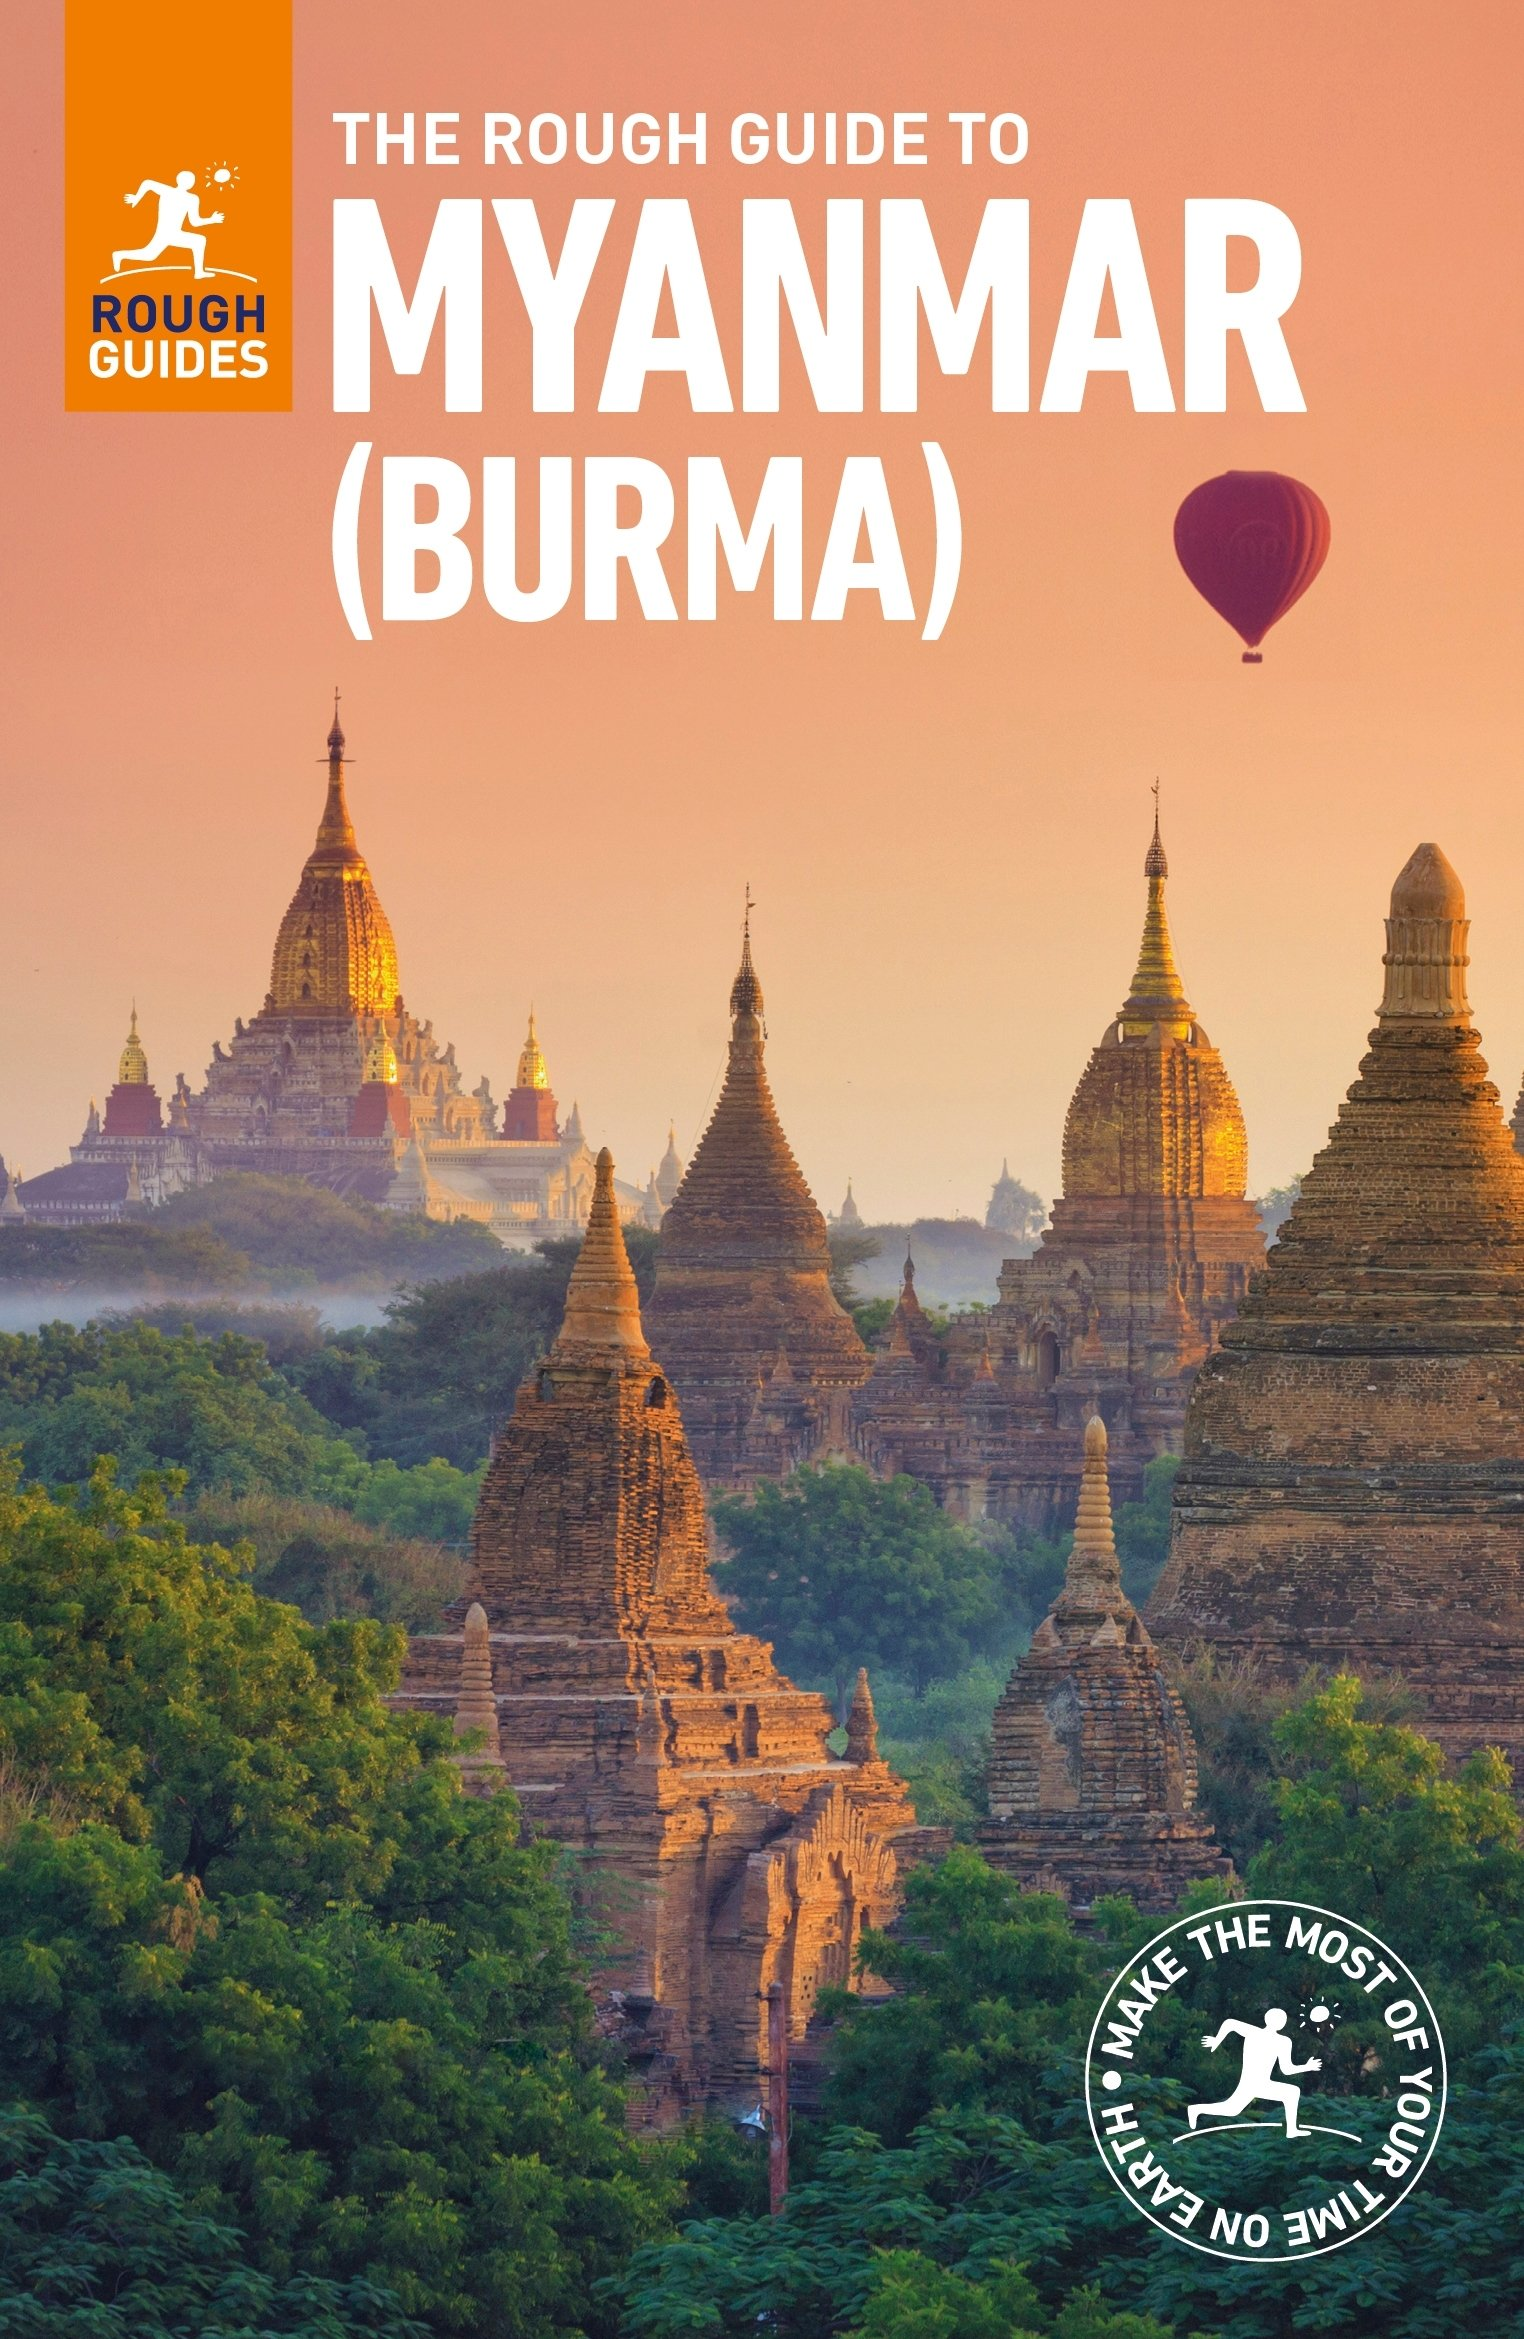 The Rough Guide to Myanmar (Burma) (Rough Guides) pdf